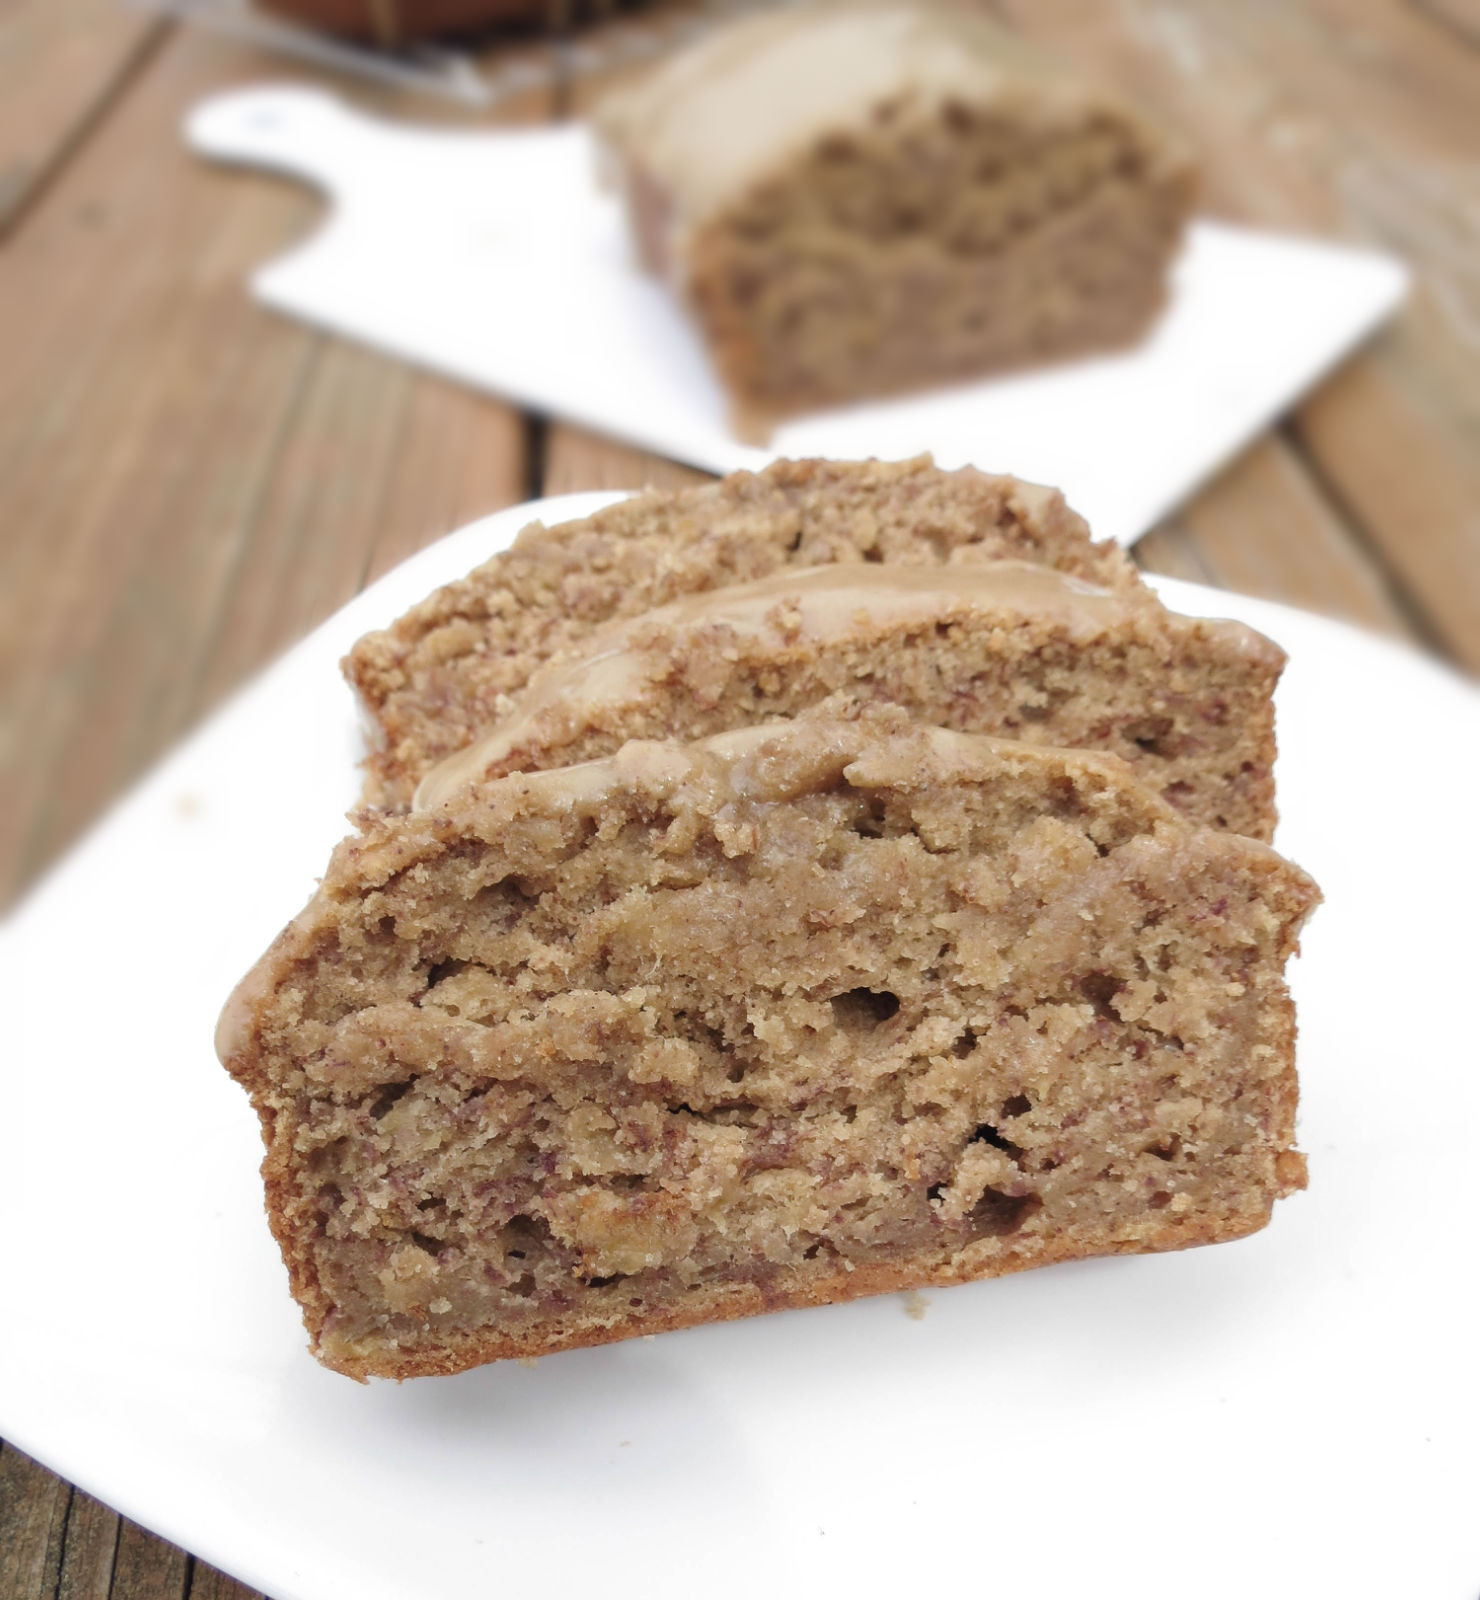 Banana Bread Recipe With Brown Sugar  The Best Moist Banana Bread With Brown Sugar Glaze